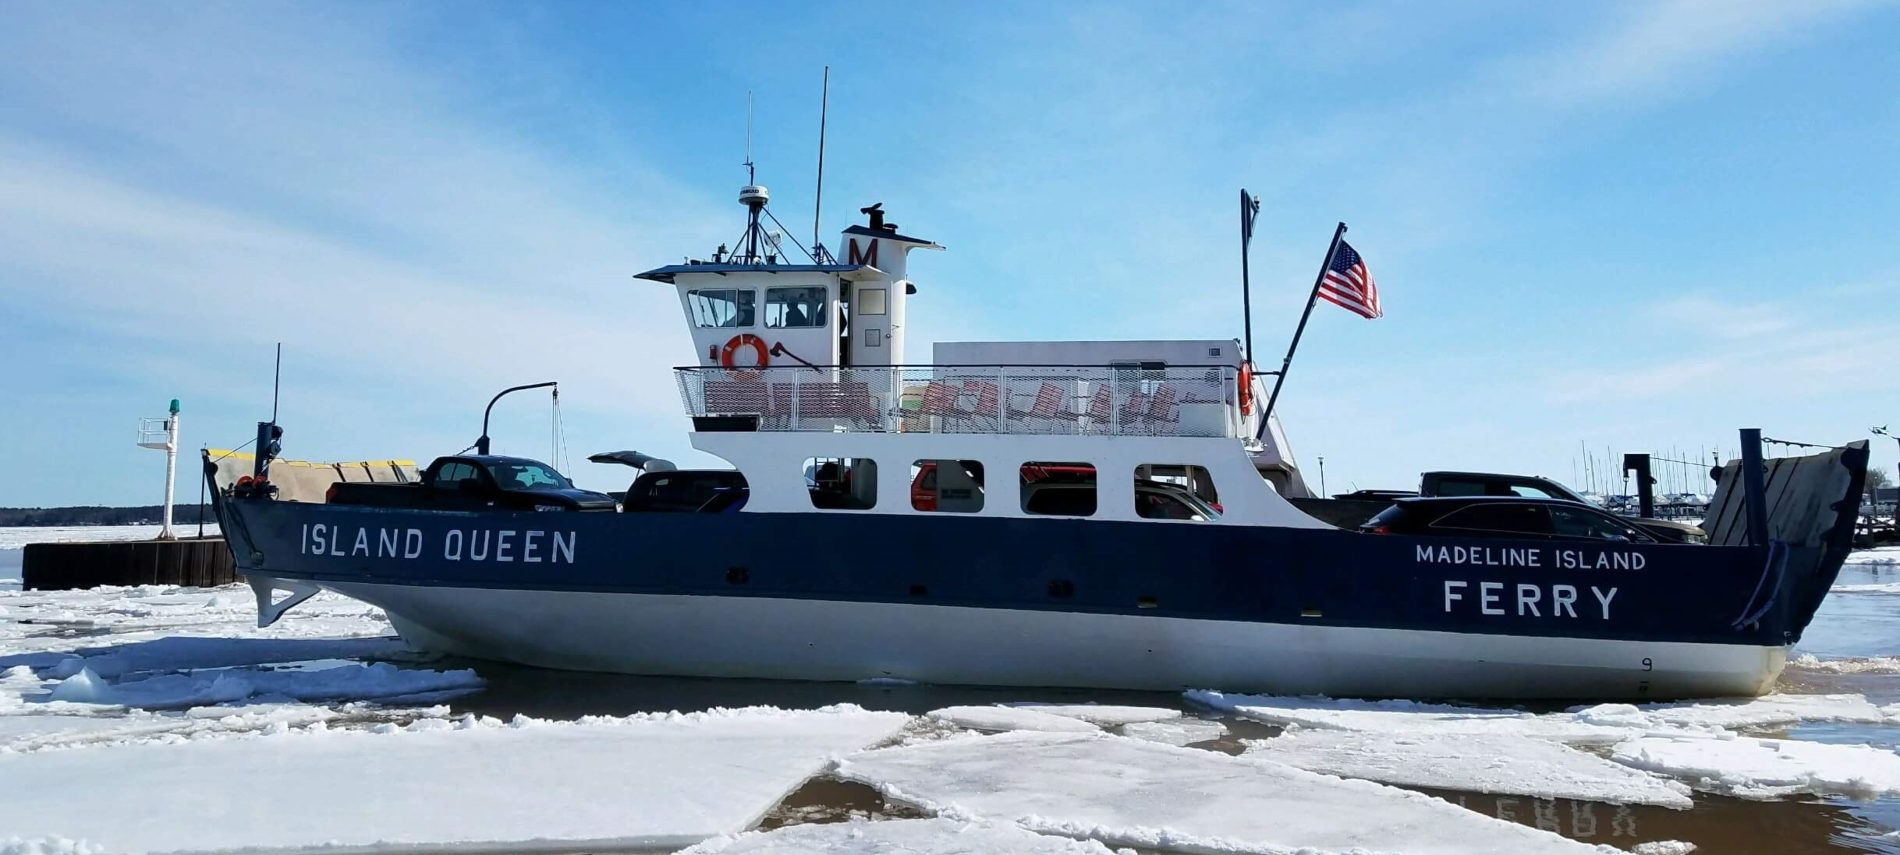 Madeline Island Ferry breaking through ice on a clear day with blue sky